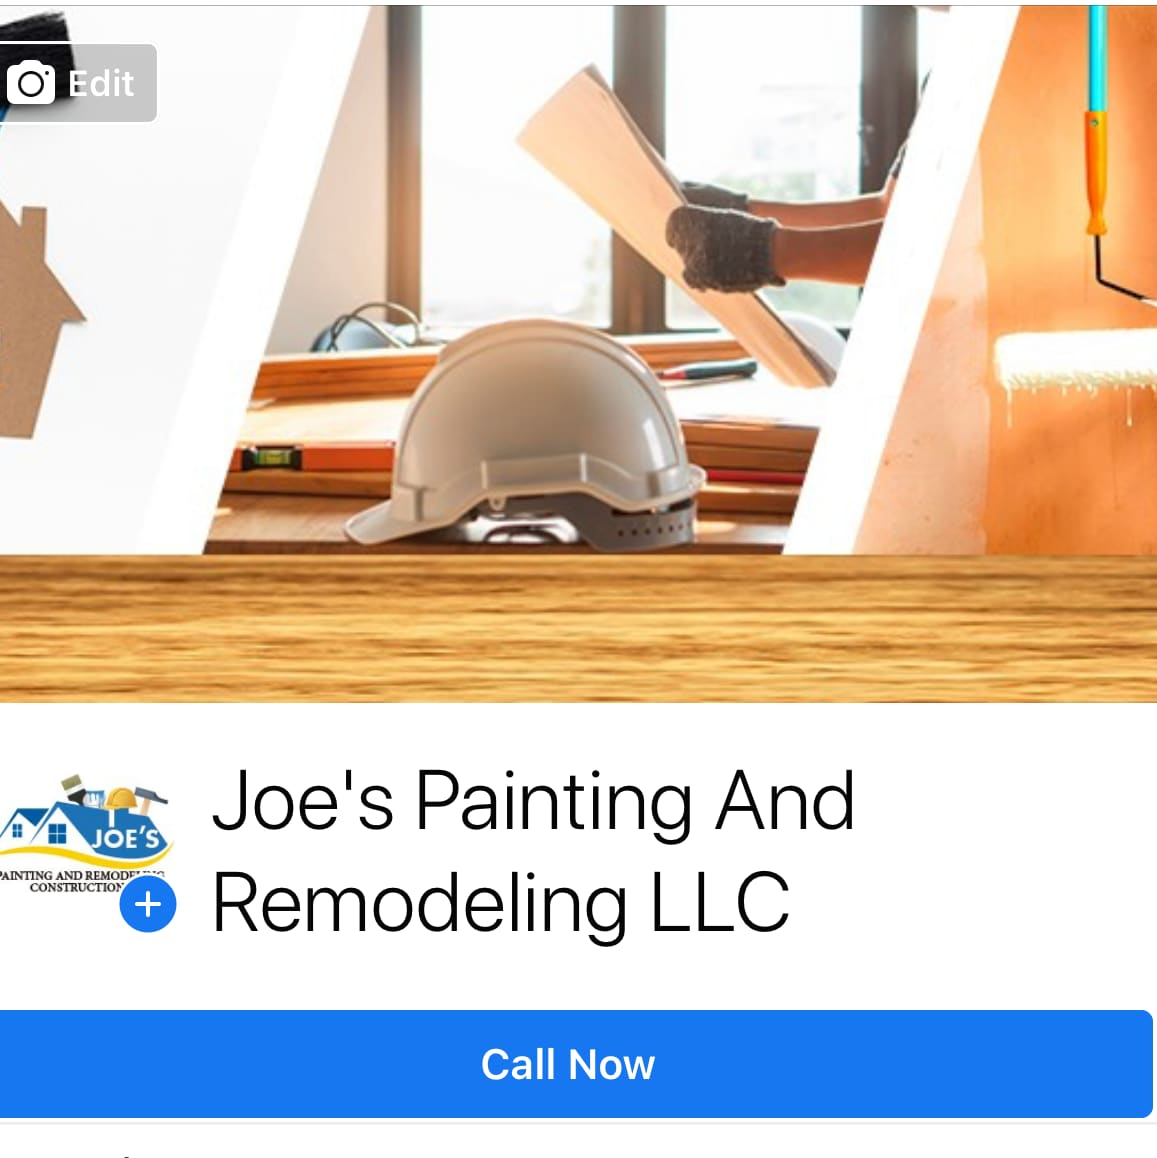 Joe's Painting and Remodeling LLC